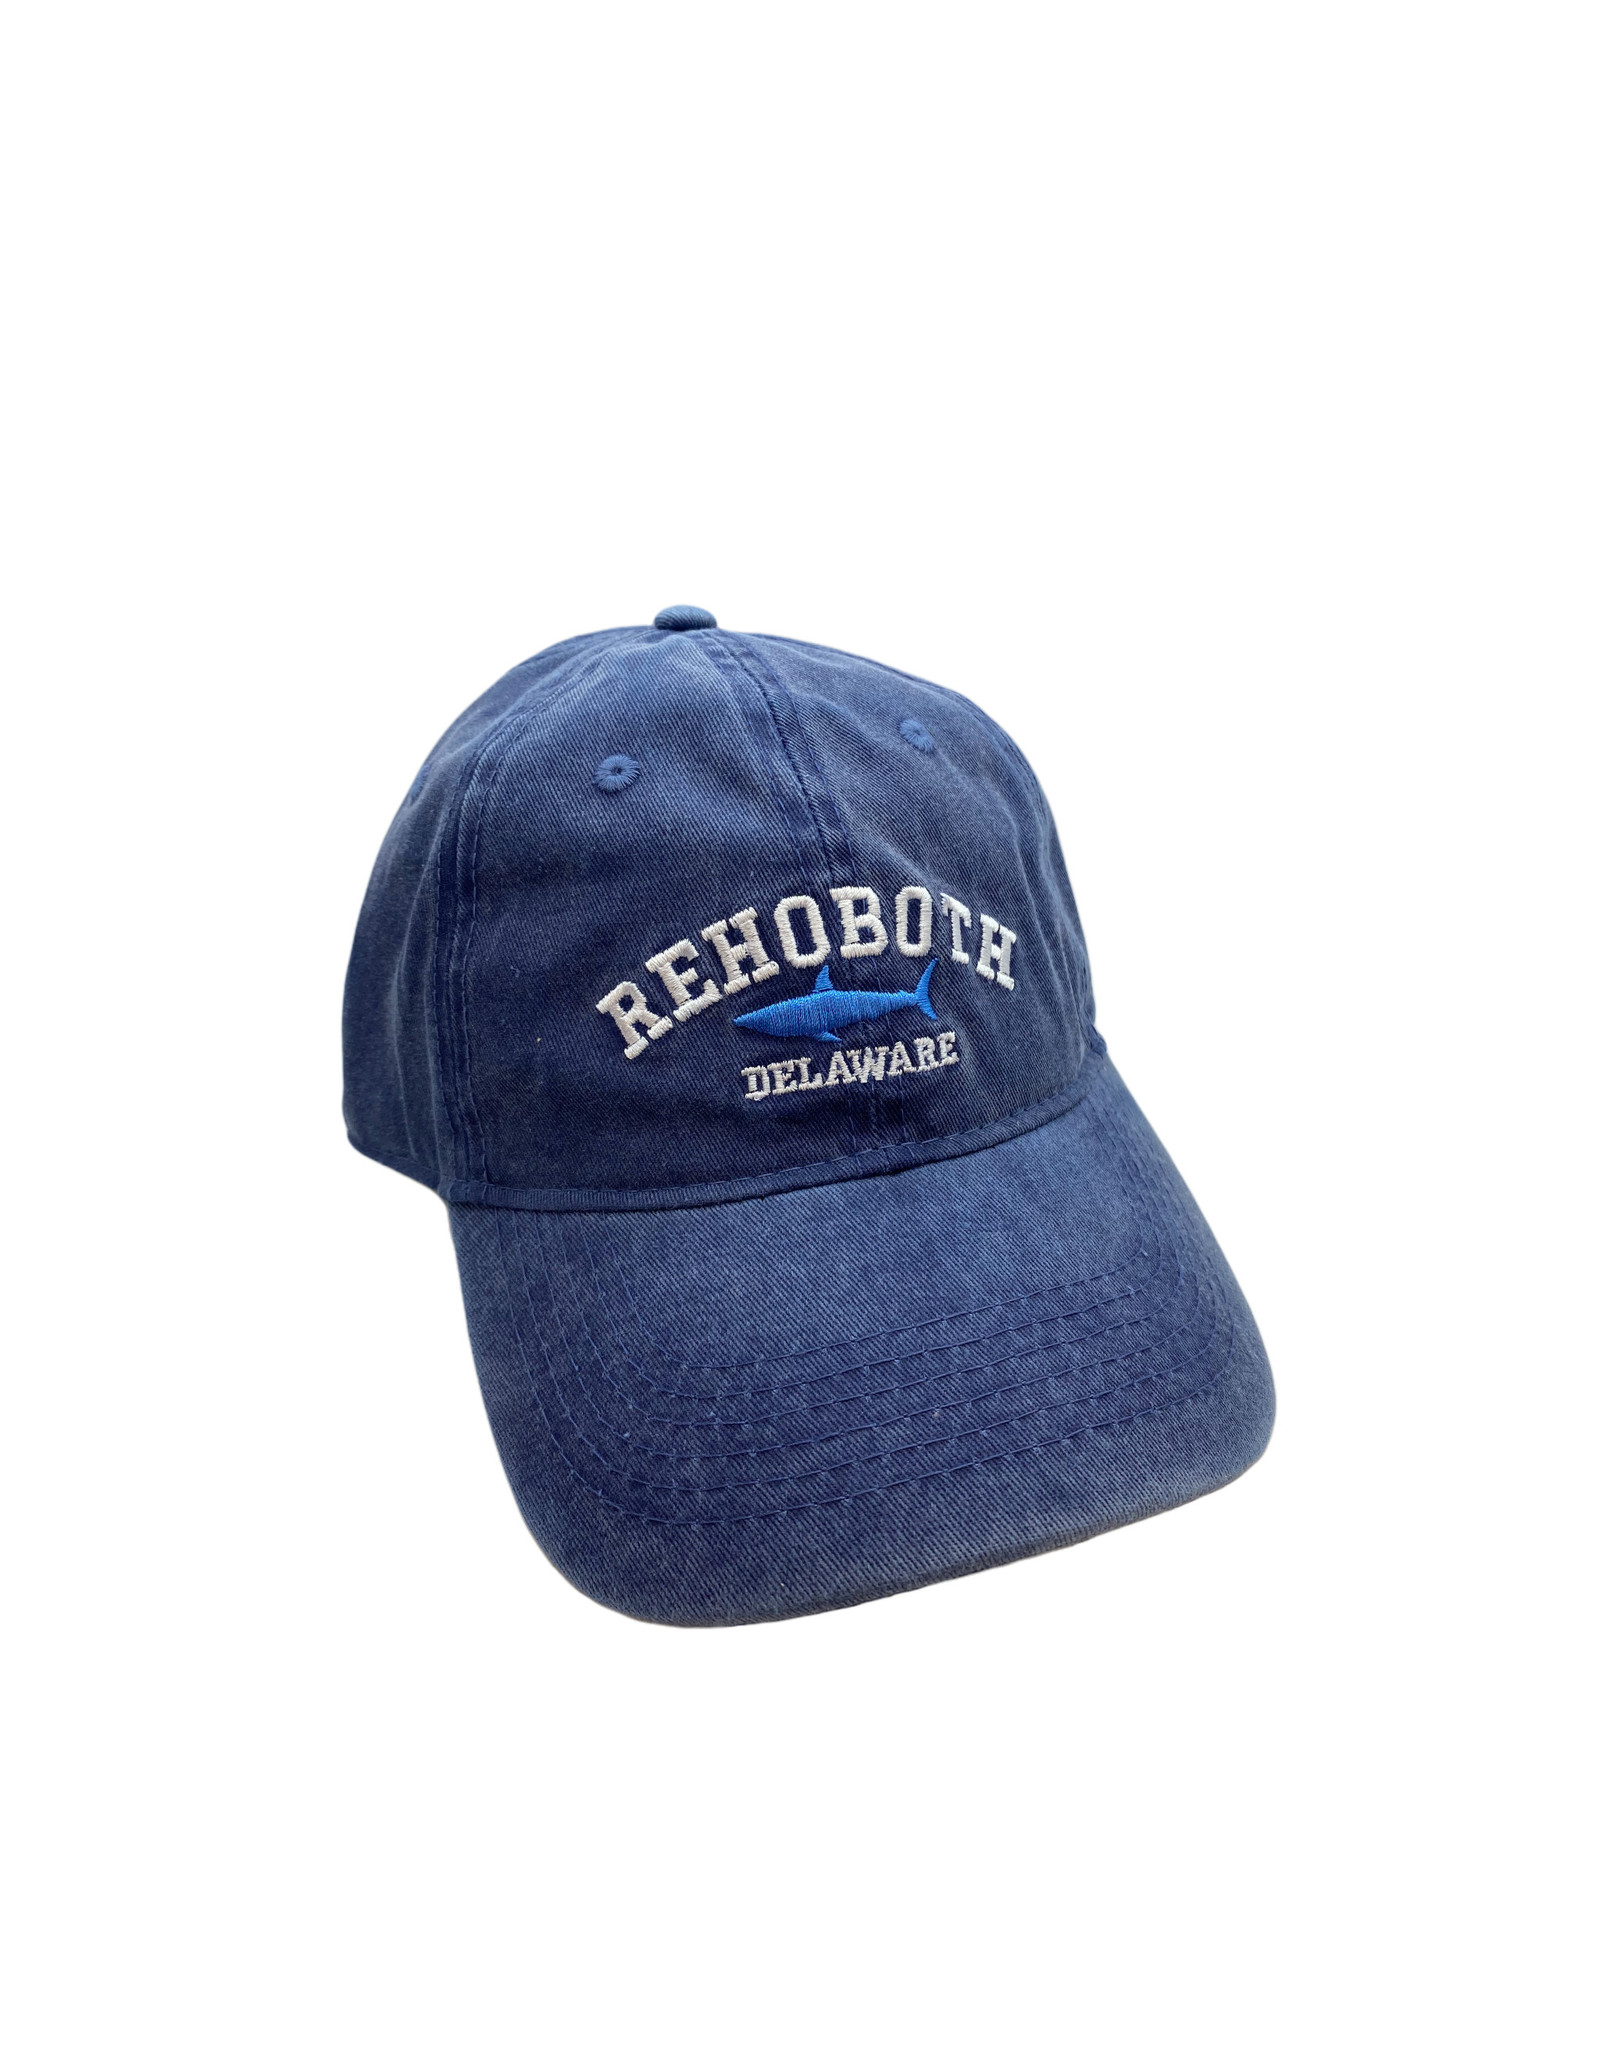 REHOBOTH LIFESTYLE CLASSIC COTTON YOUTH BEACH HAT